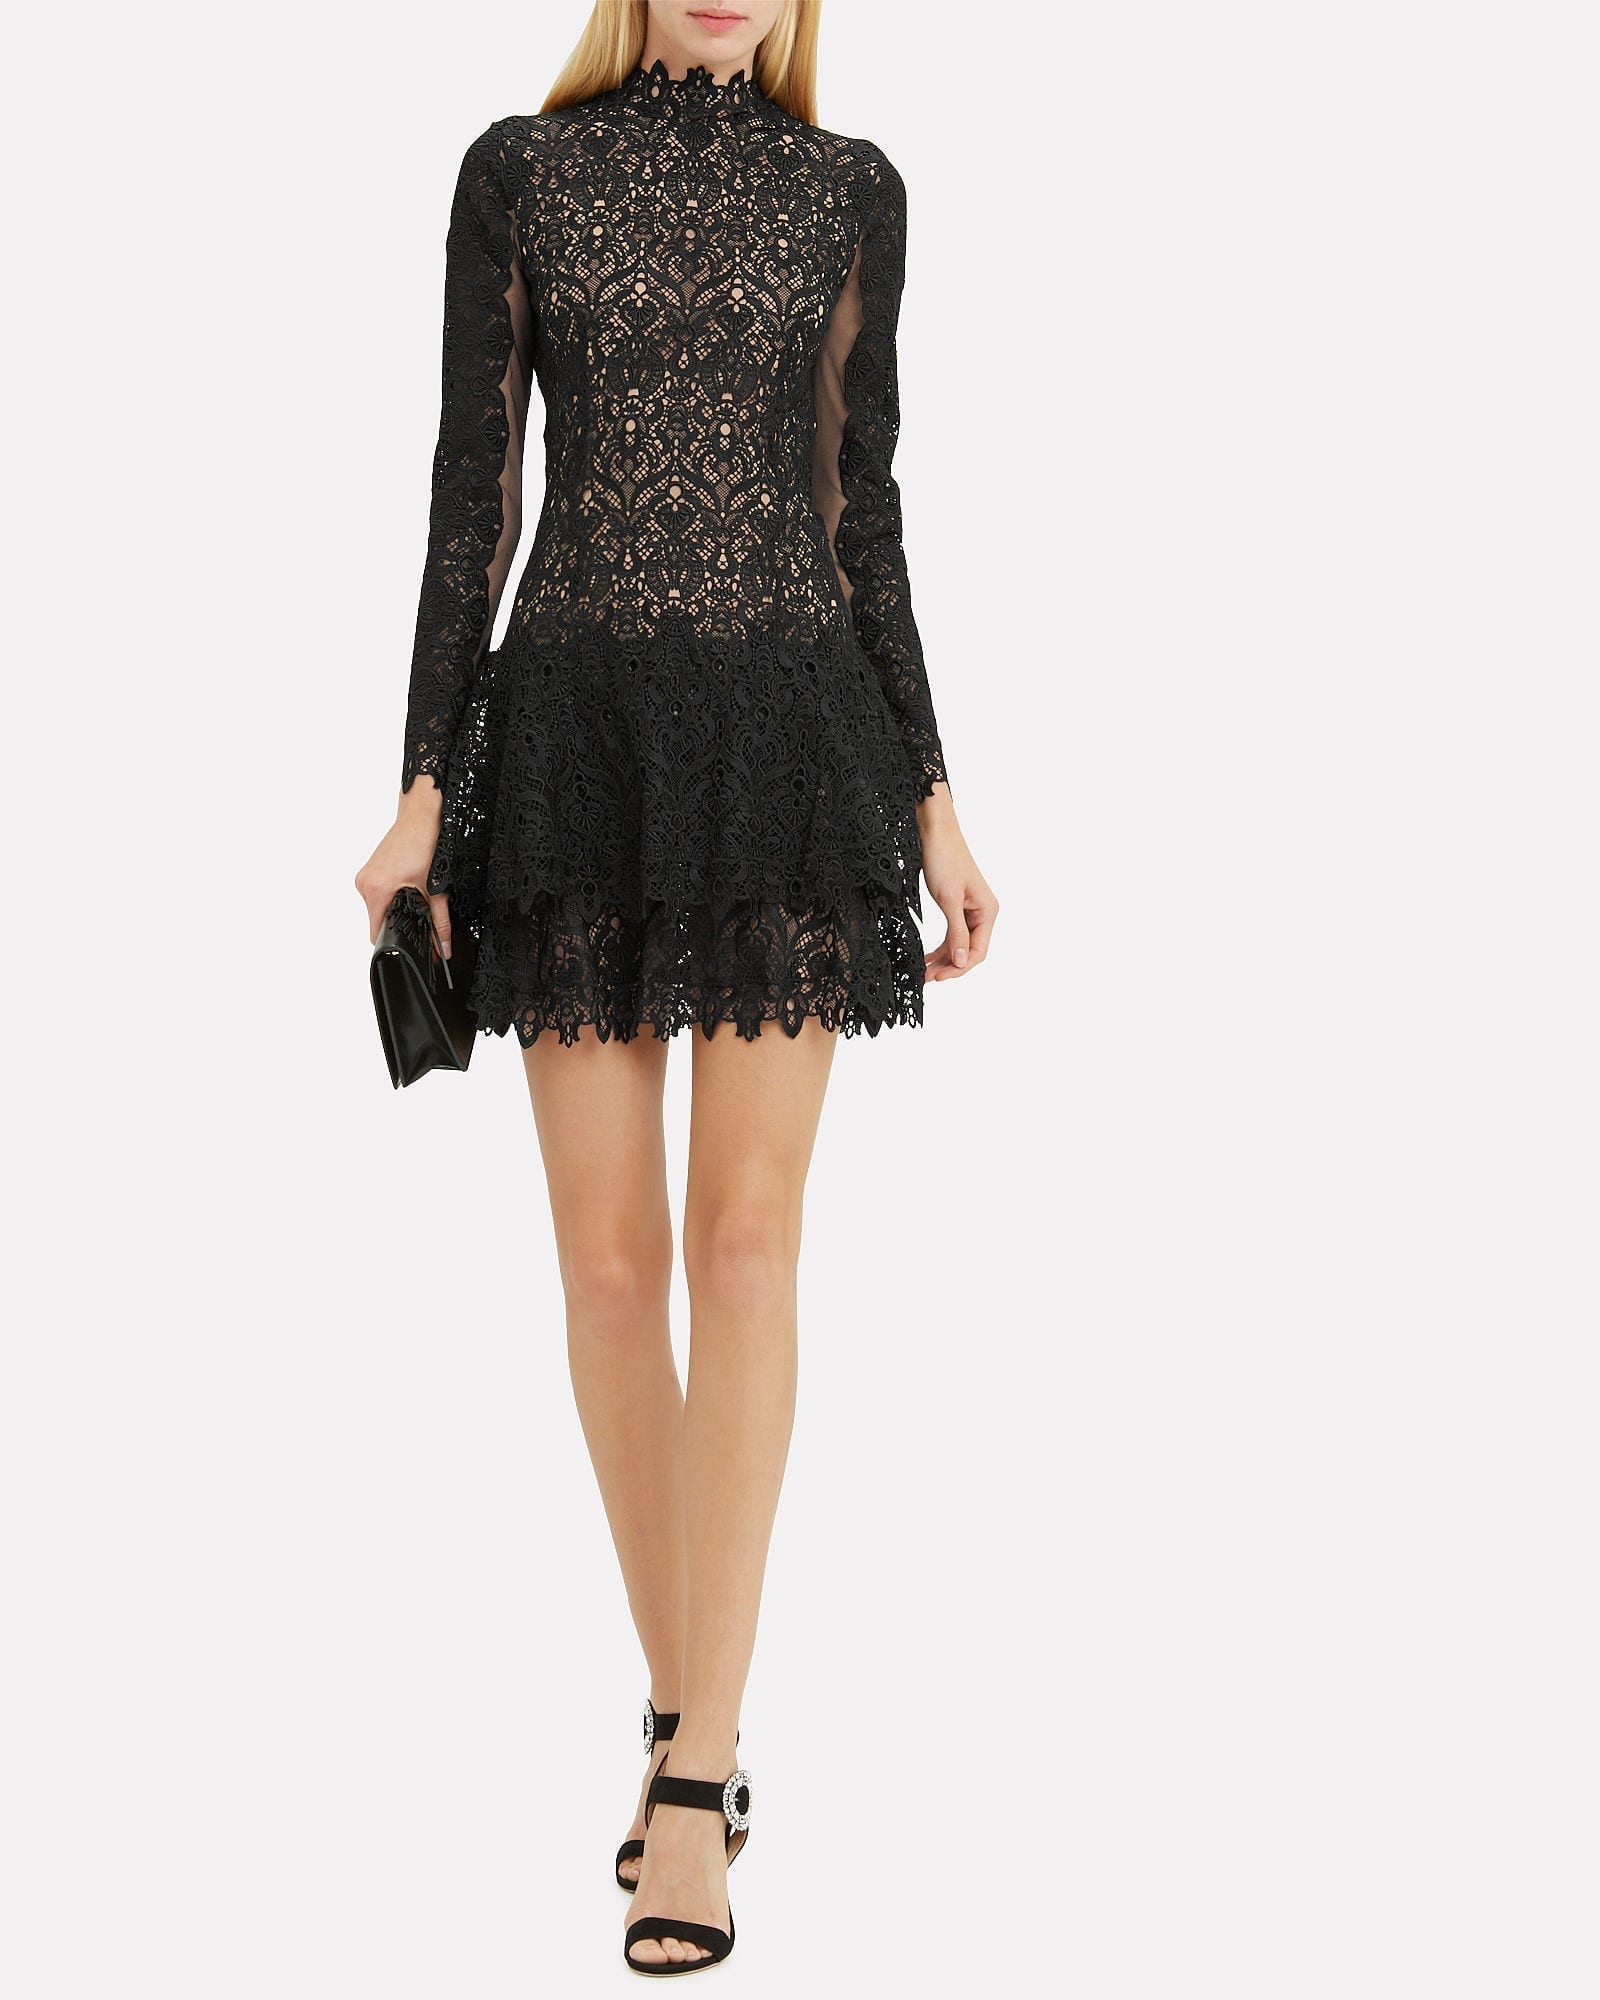 JONATHAN SIMKHAI Guipure Lace Mock Neck Black Dress